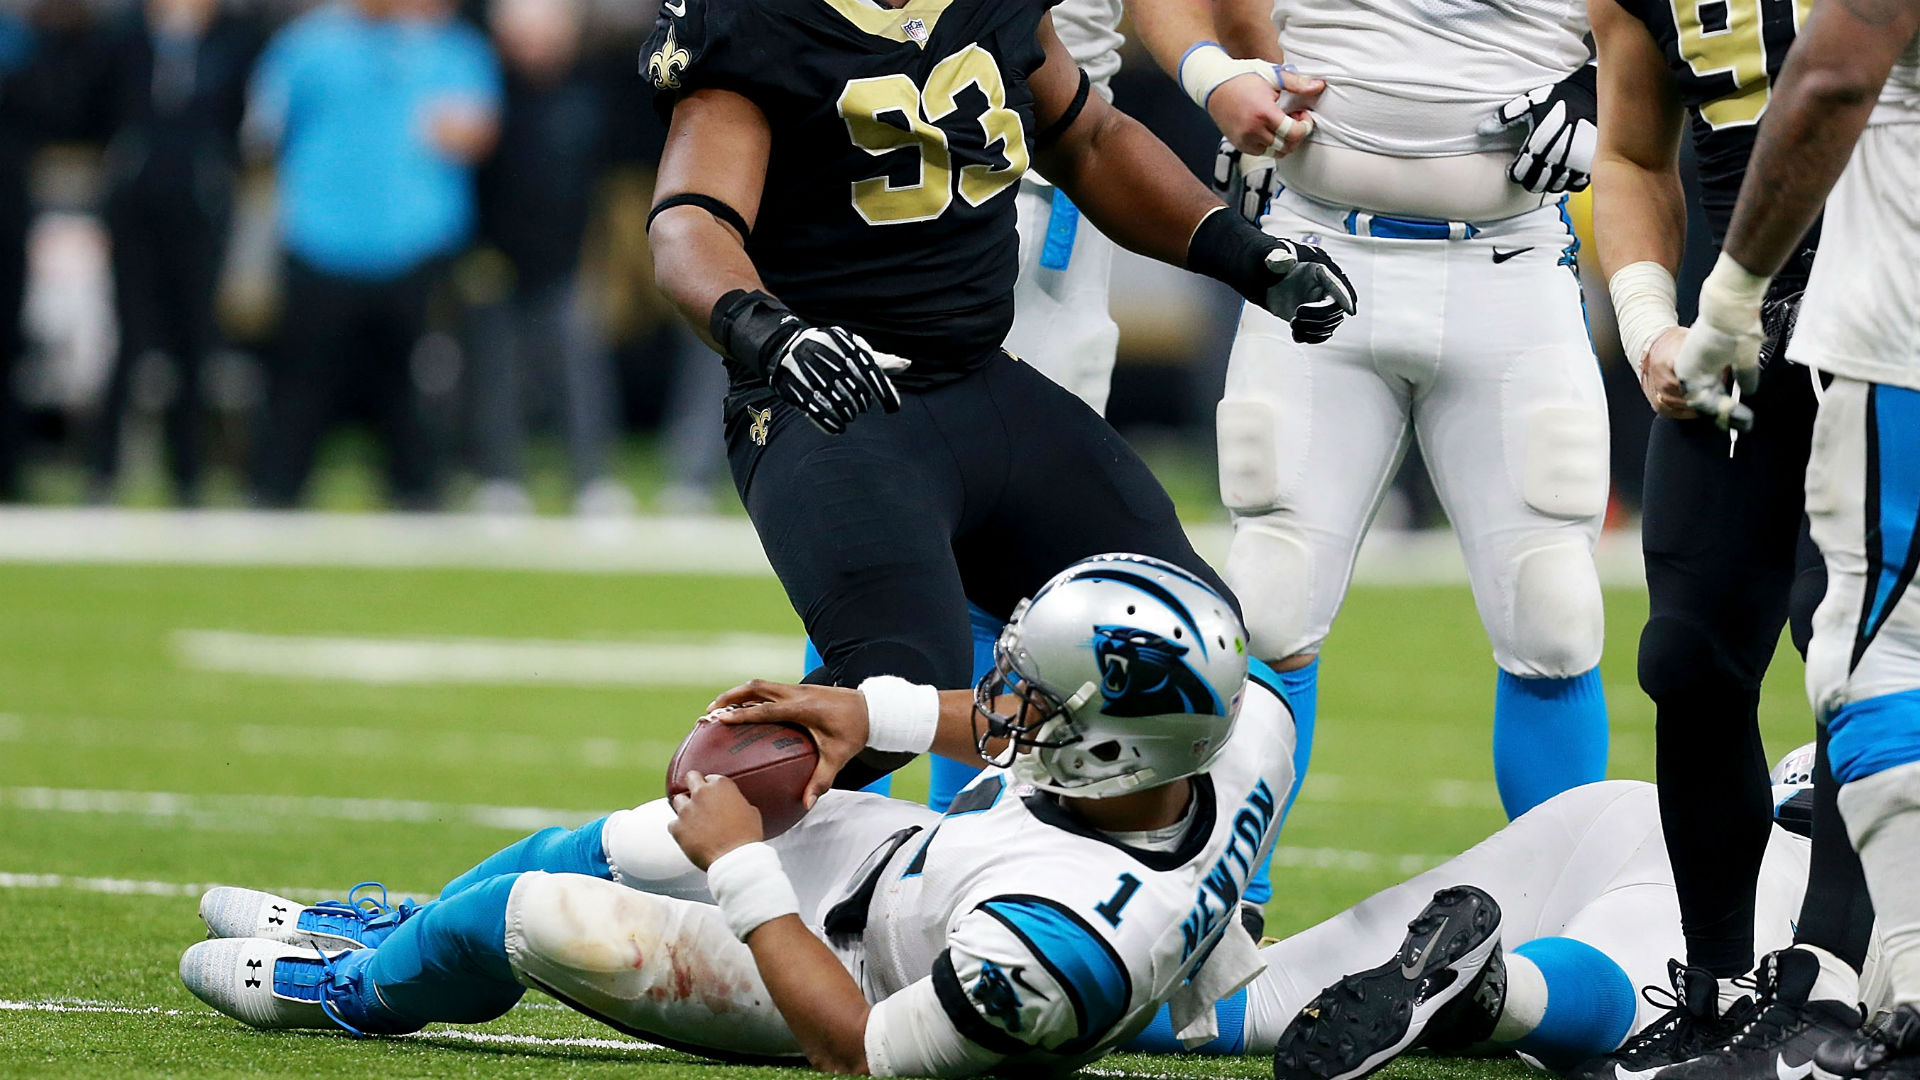 Panthers at Saints - Playbook for the NFC Wild Card round